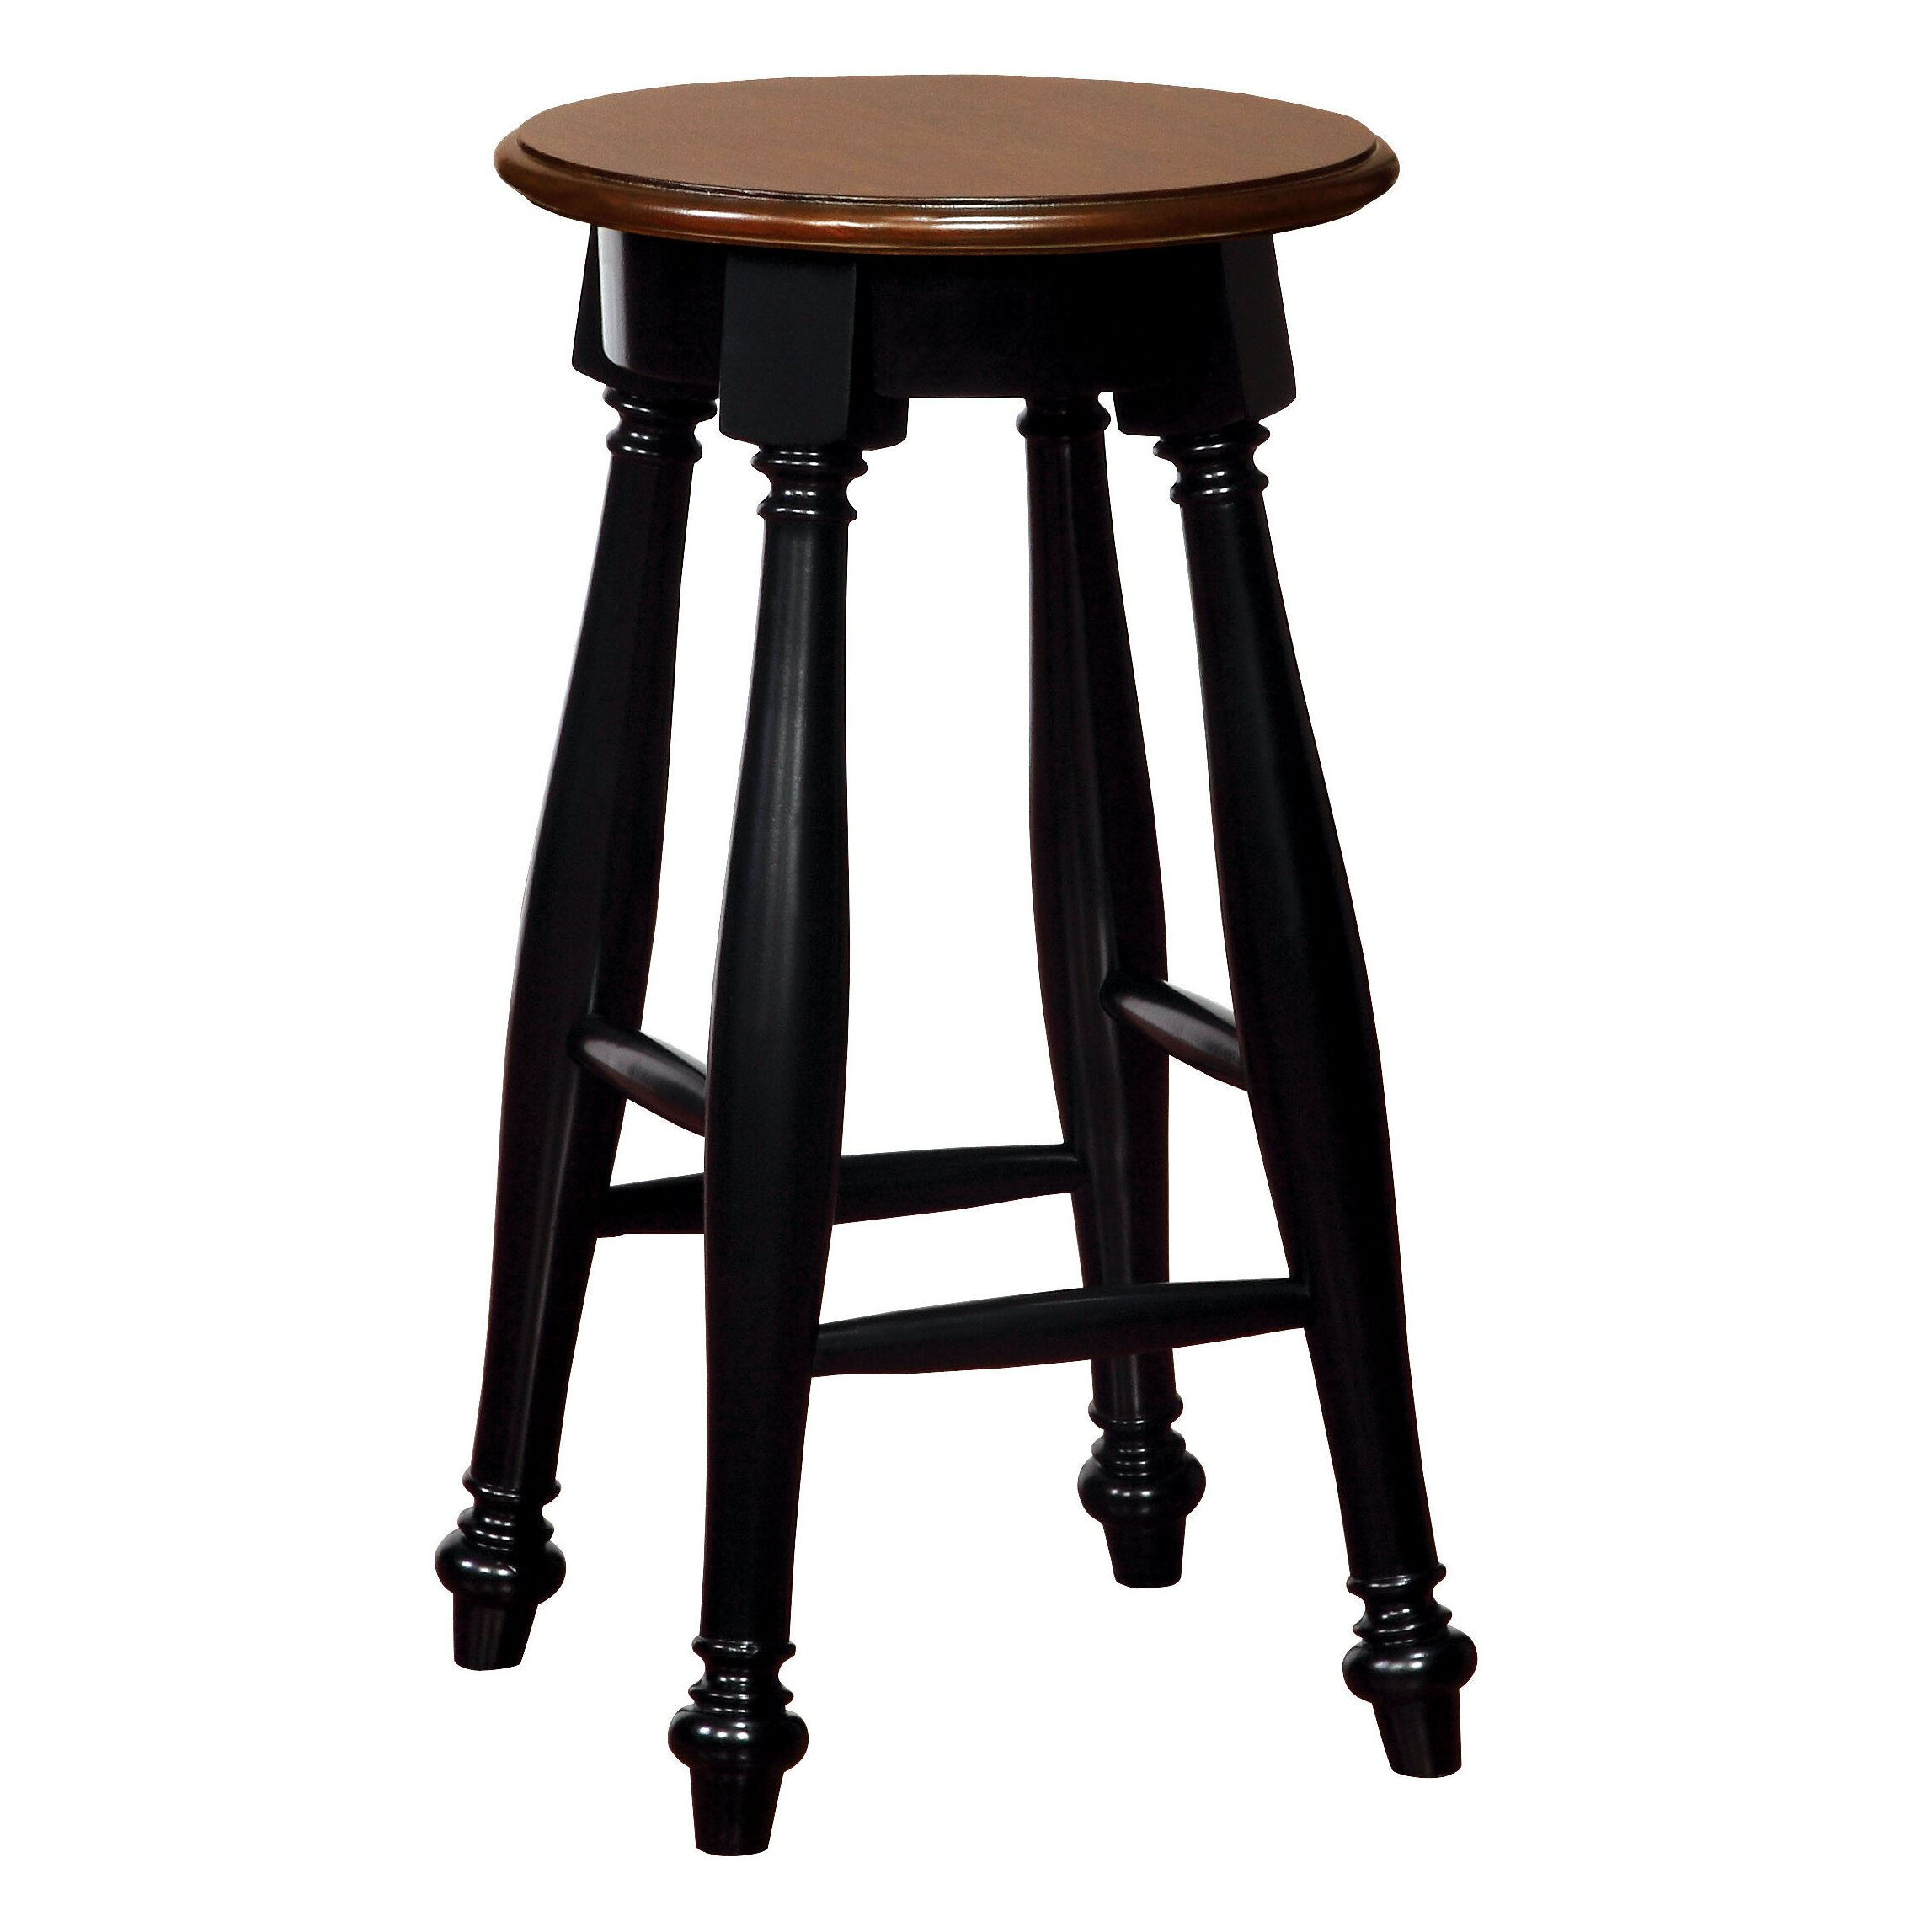 Enitiallab caro 24 bar stool for 24 bar stools